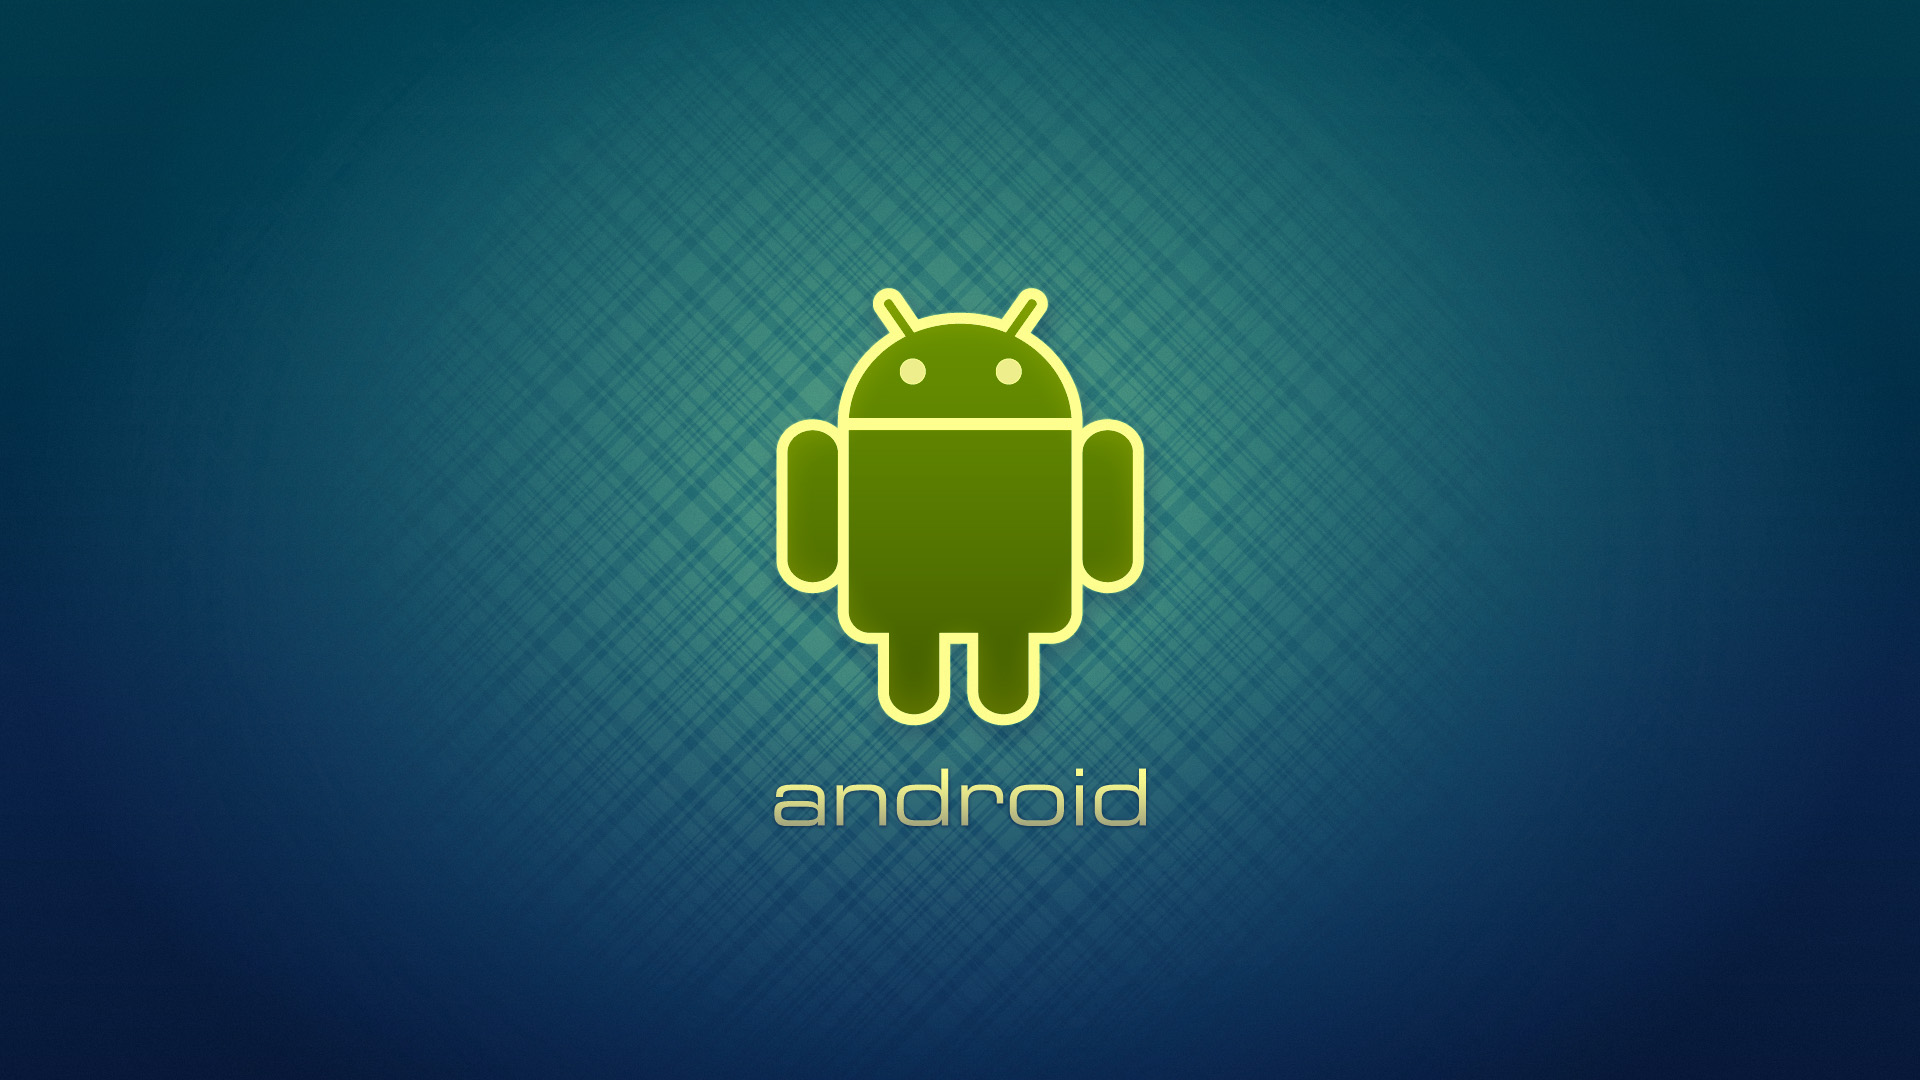 Android Background Wallpaper